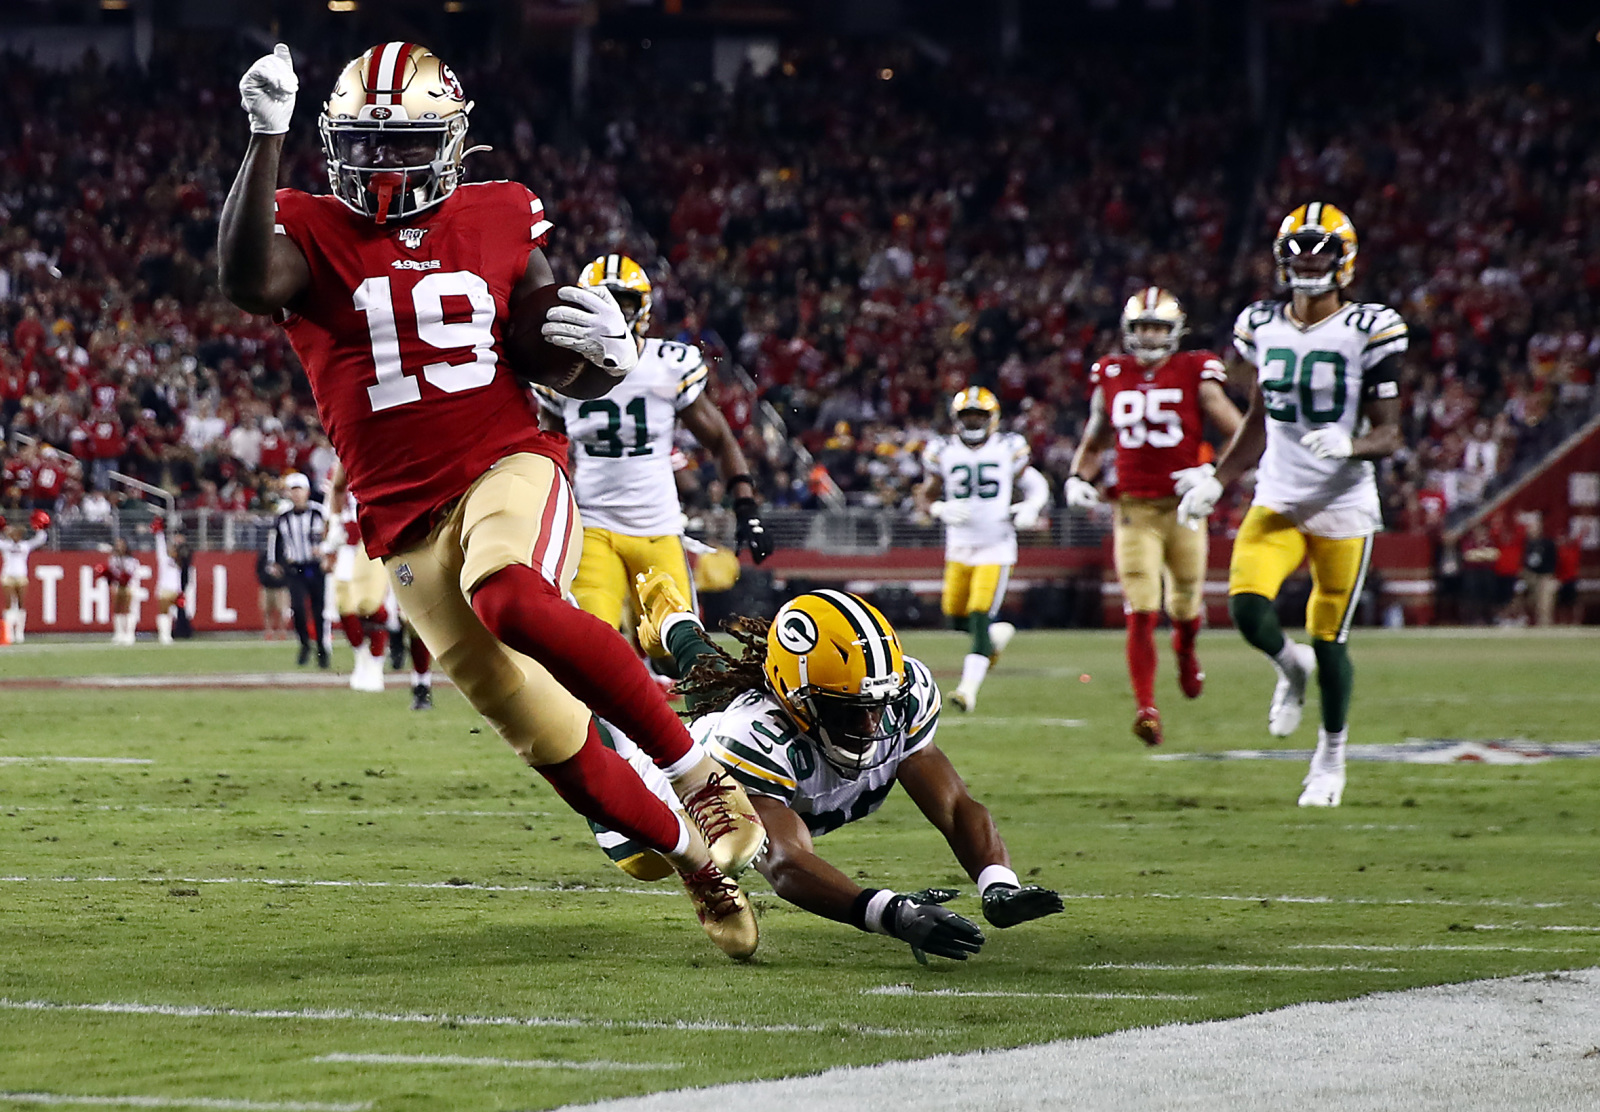 49ers: Deebo Samuel will go off vs Packers in 2020 NFC Championship